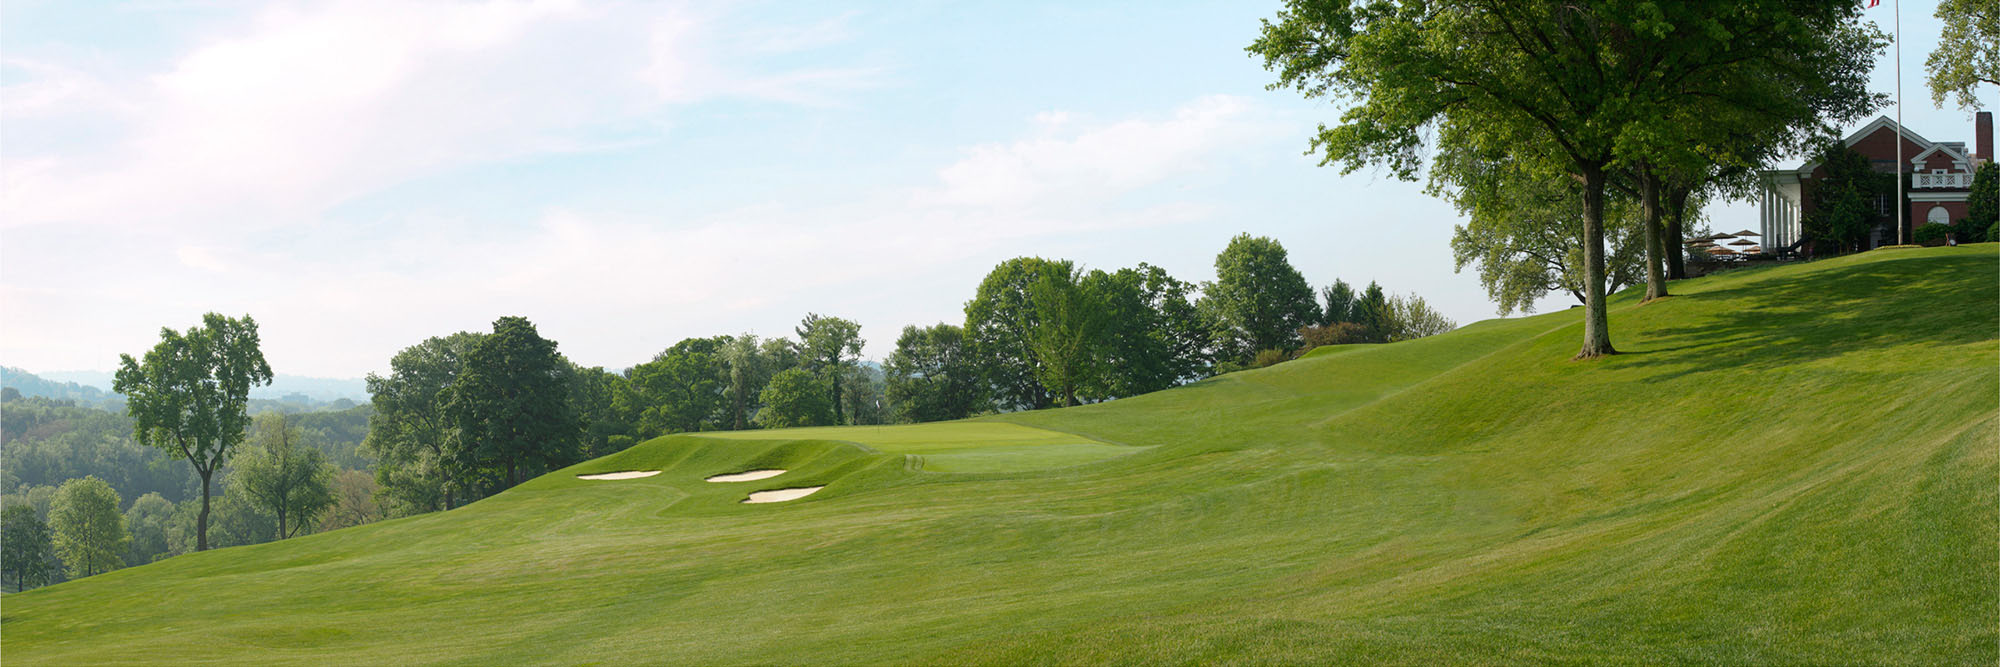 Golf Course Image - Pittsburgh Field Club No. 18